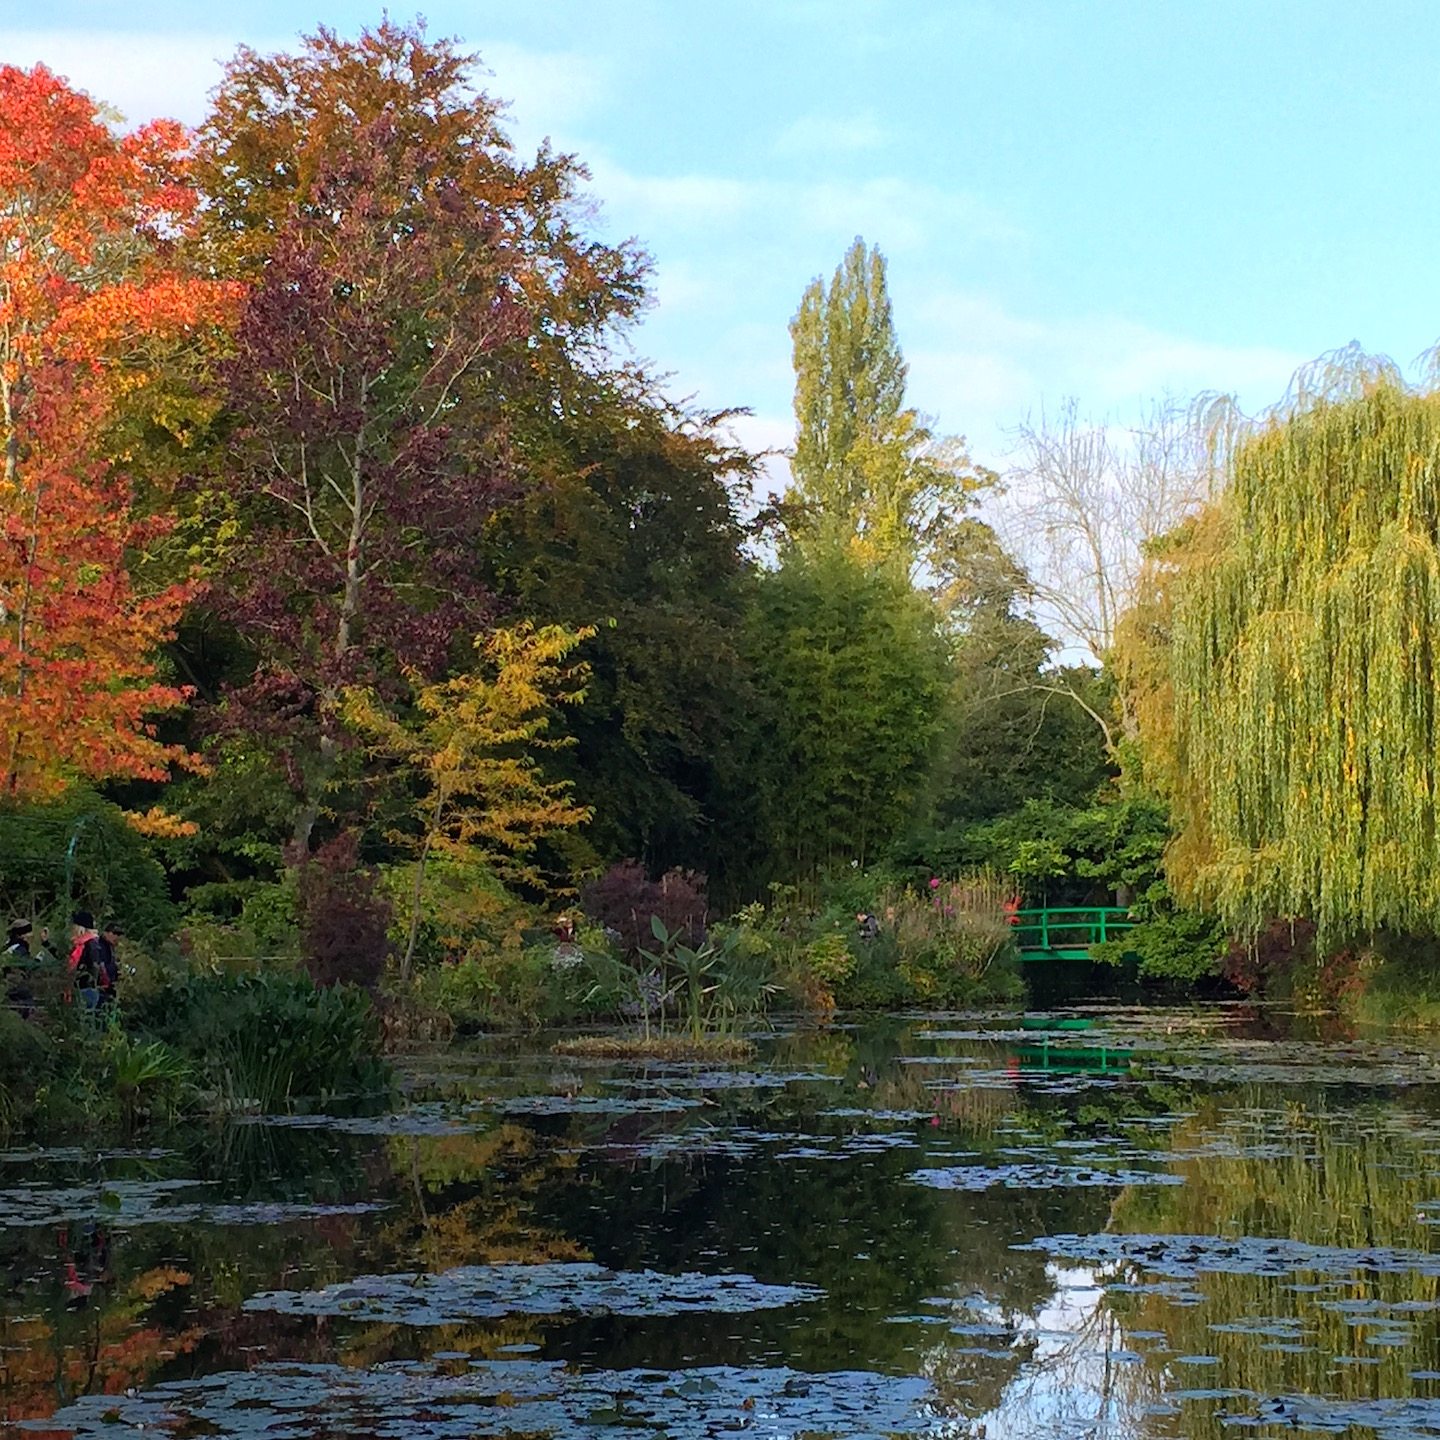 Monet's Pond, October 2015